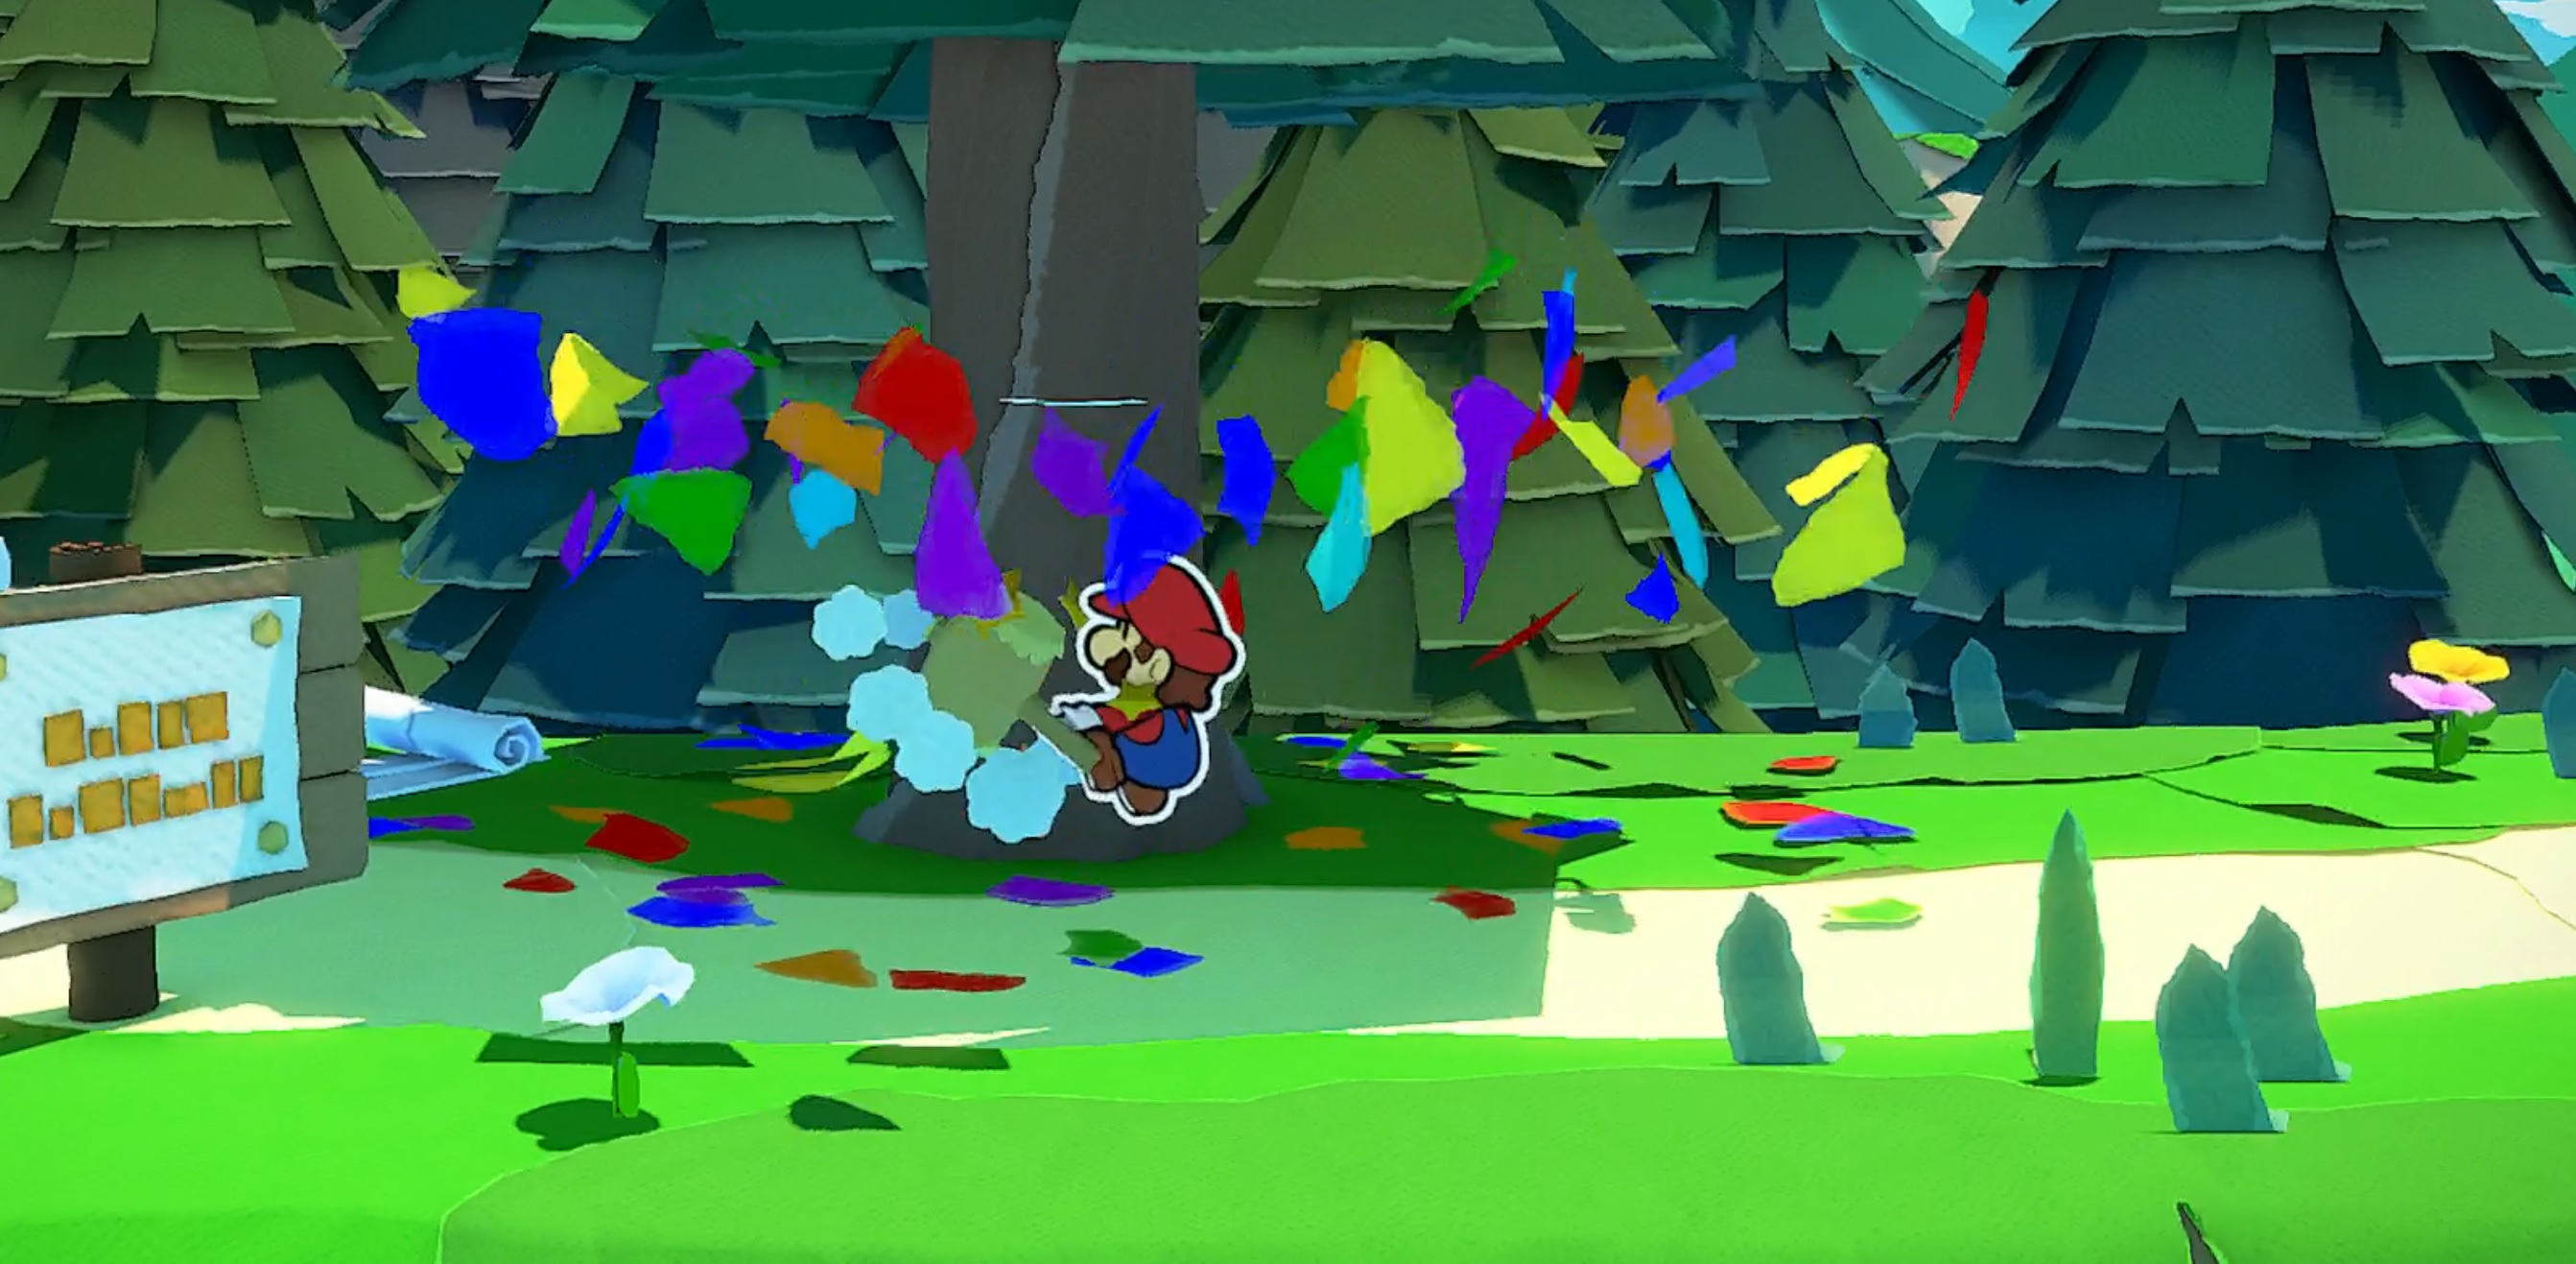 How to get confetti in Paper Mario: The Origami King